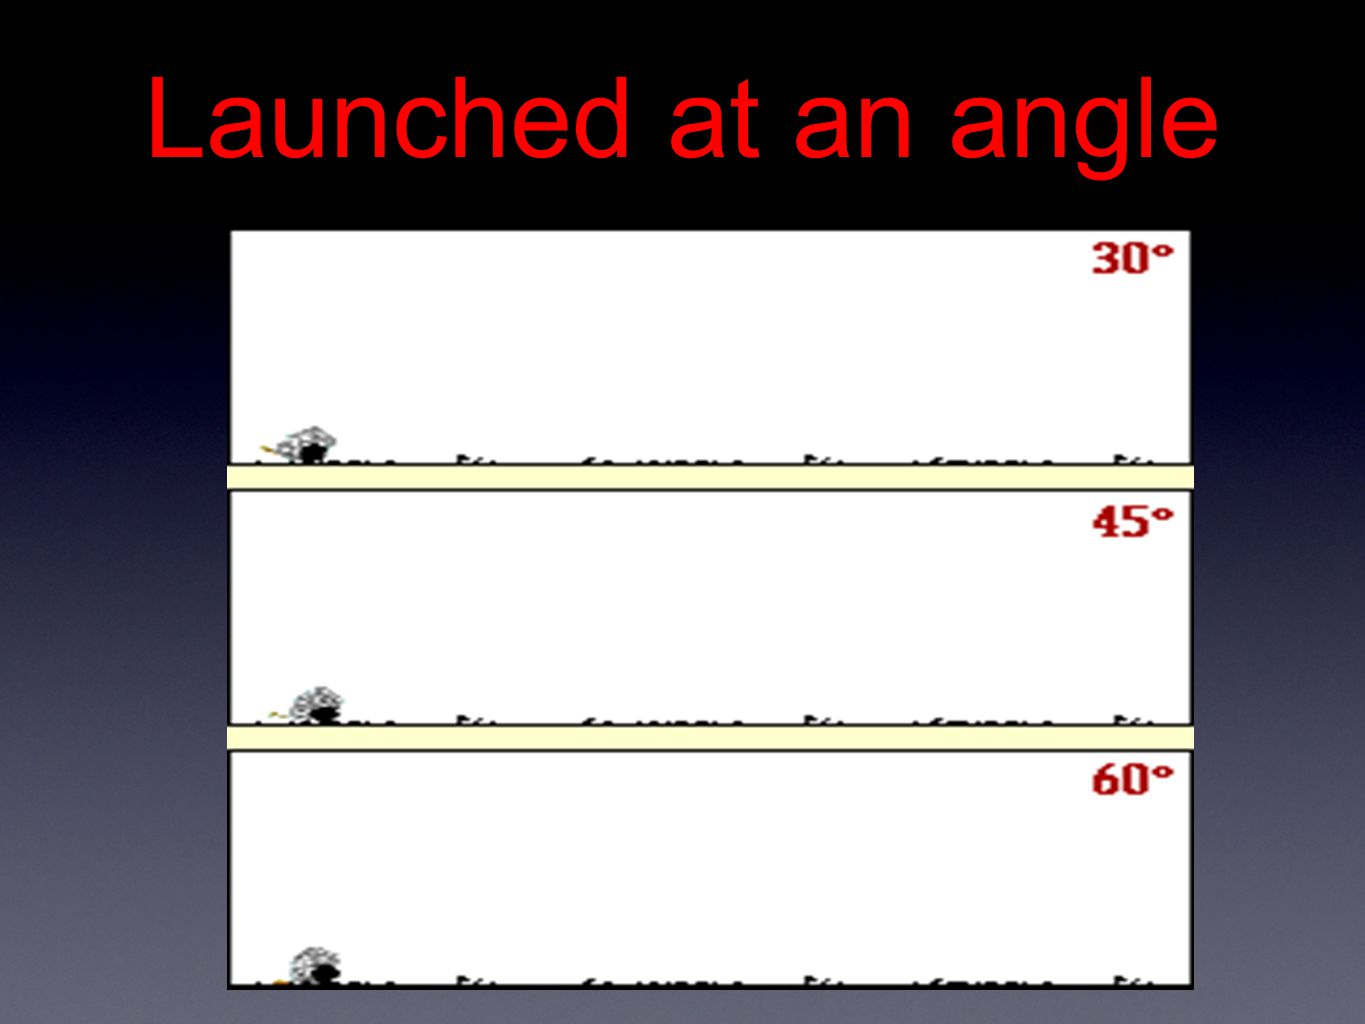 Launched at an angle